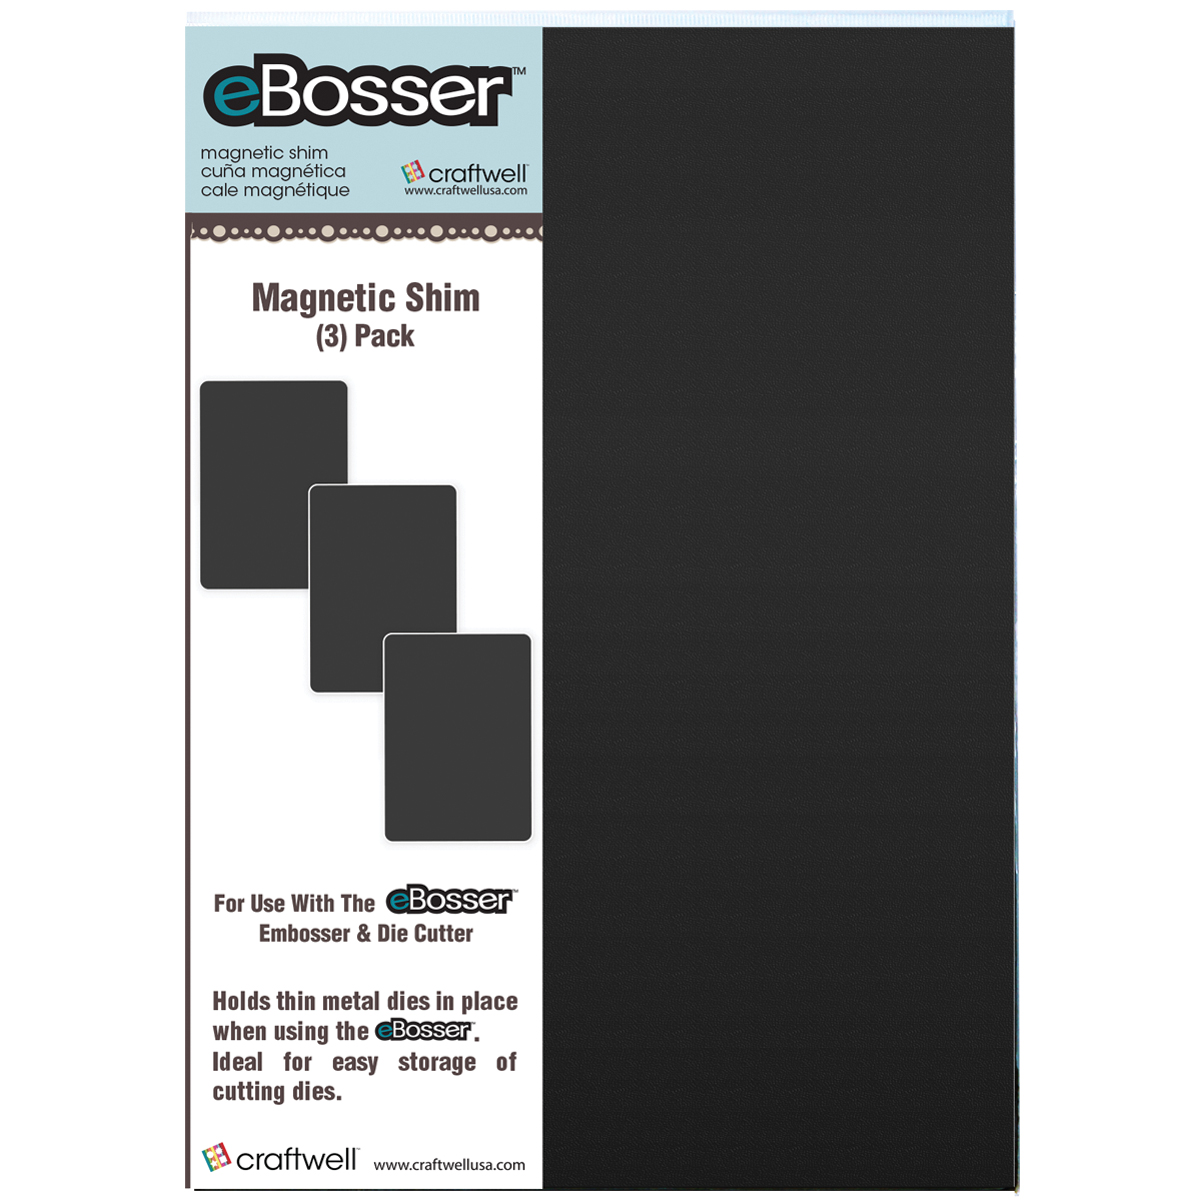 eBosser Magnetic Shims, 3-Pack